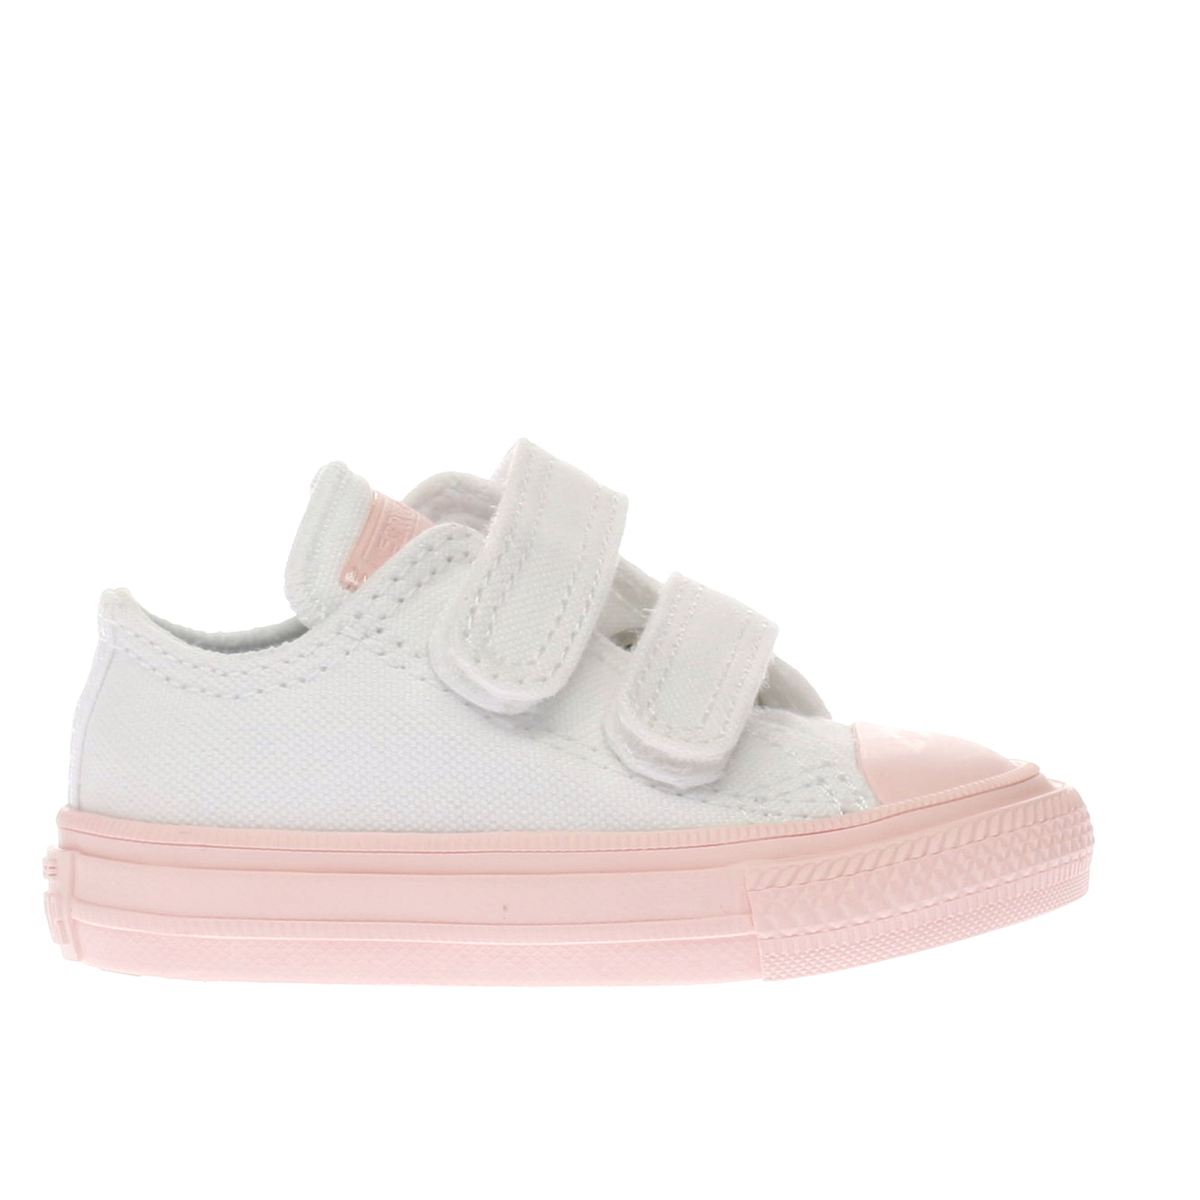 converse white & pink chuck taylor ii ox Girls Toddler Trainers